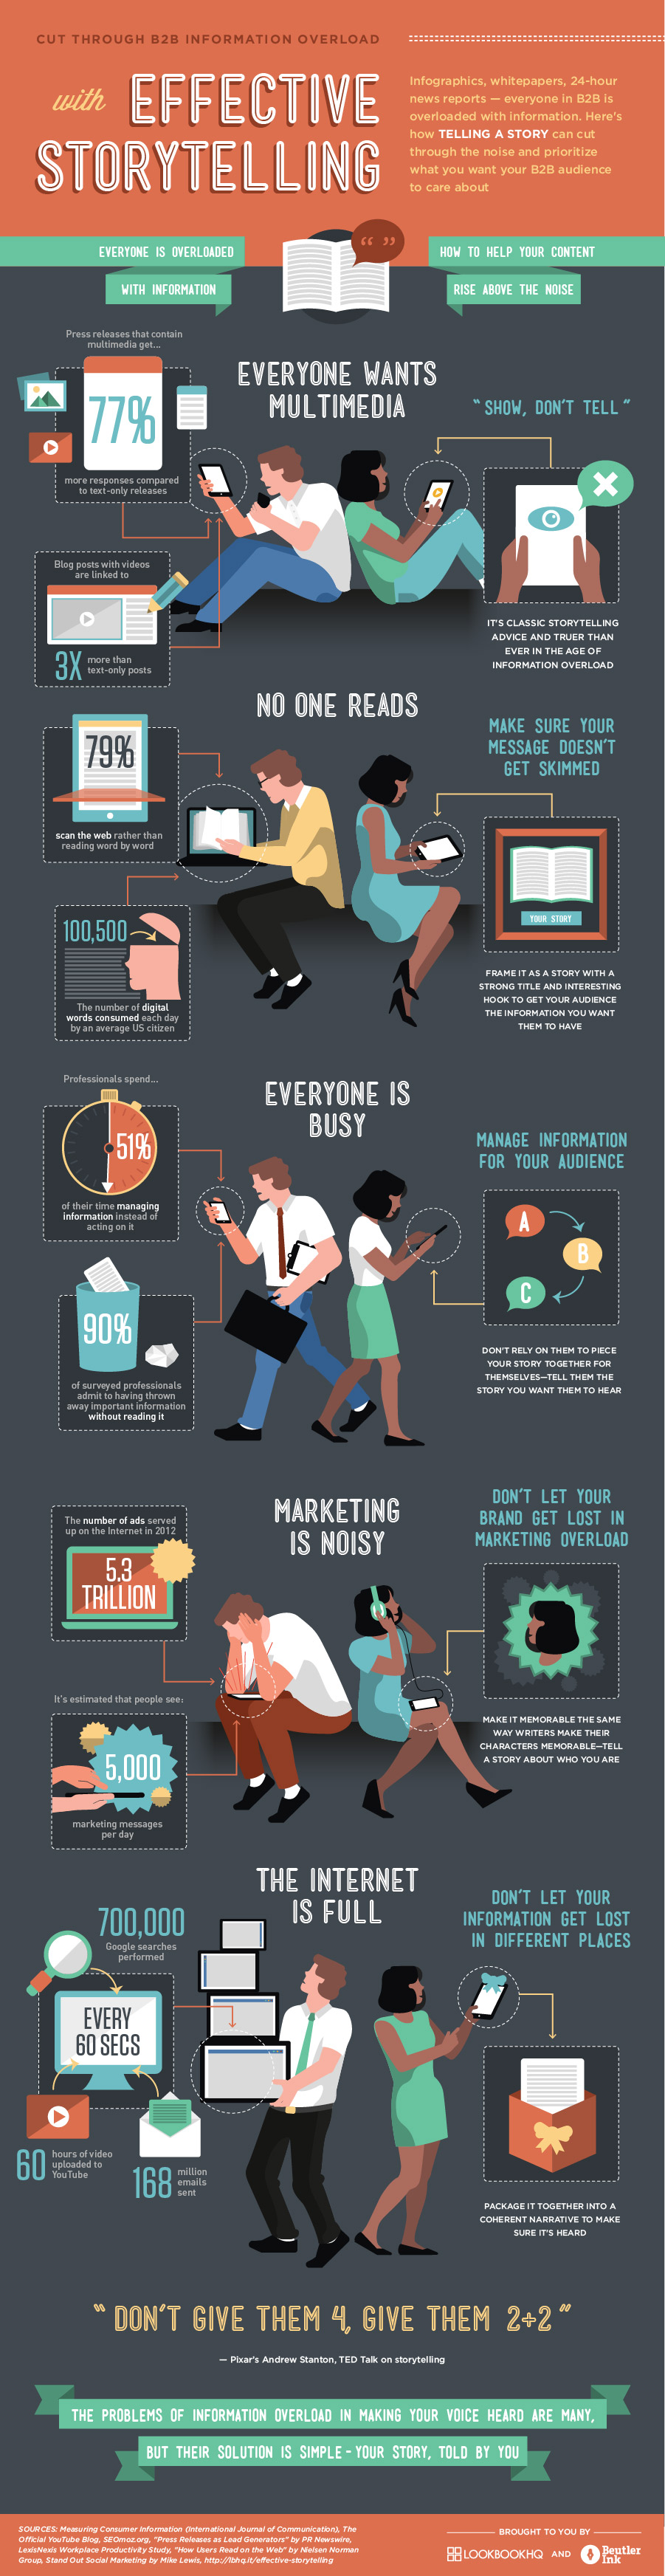 effective_storytelling_information_overload_infographic